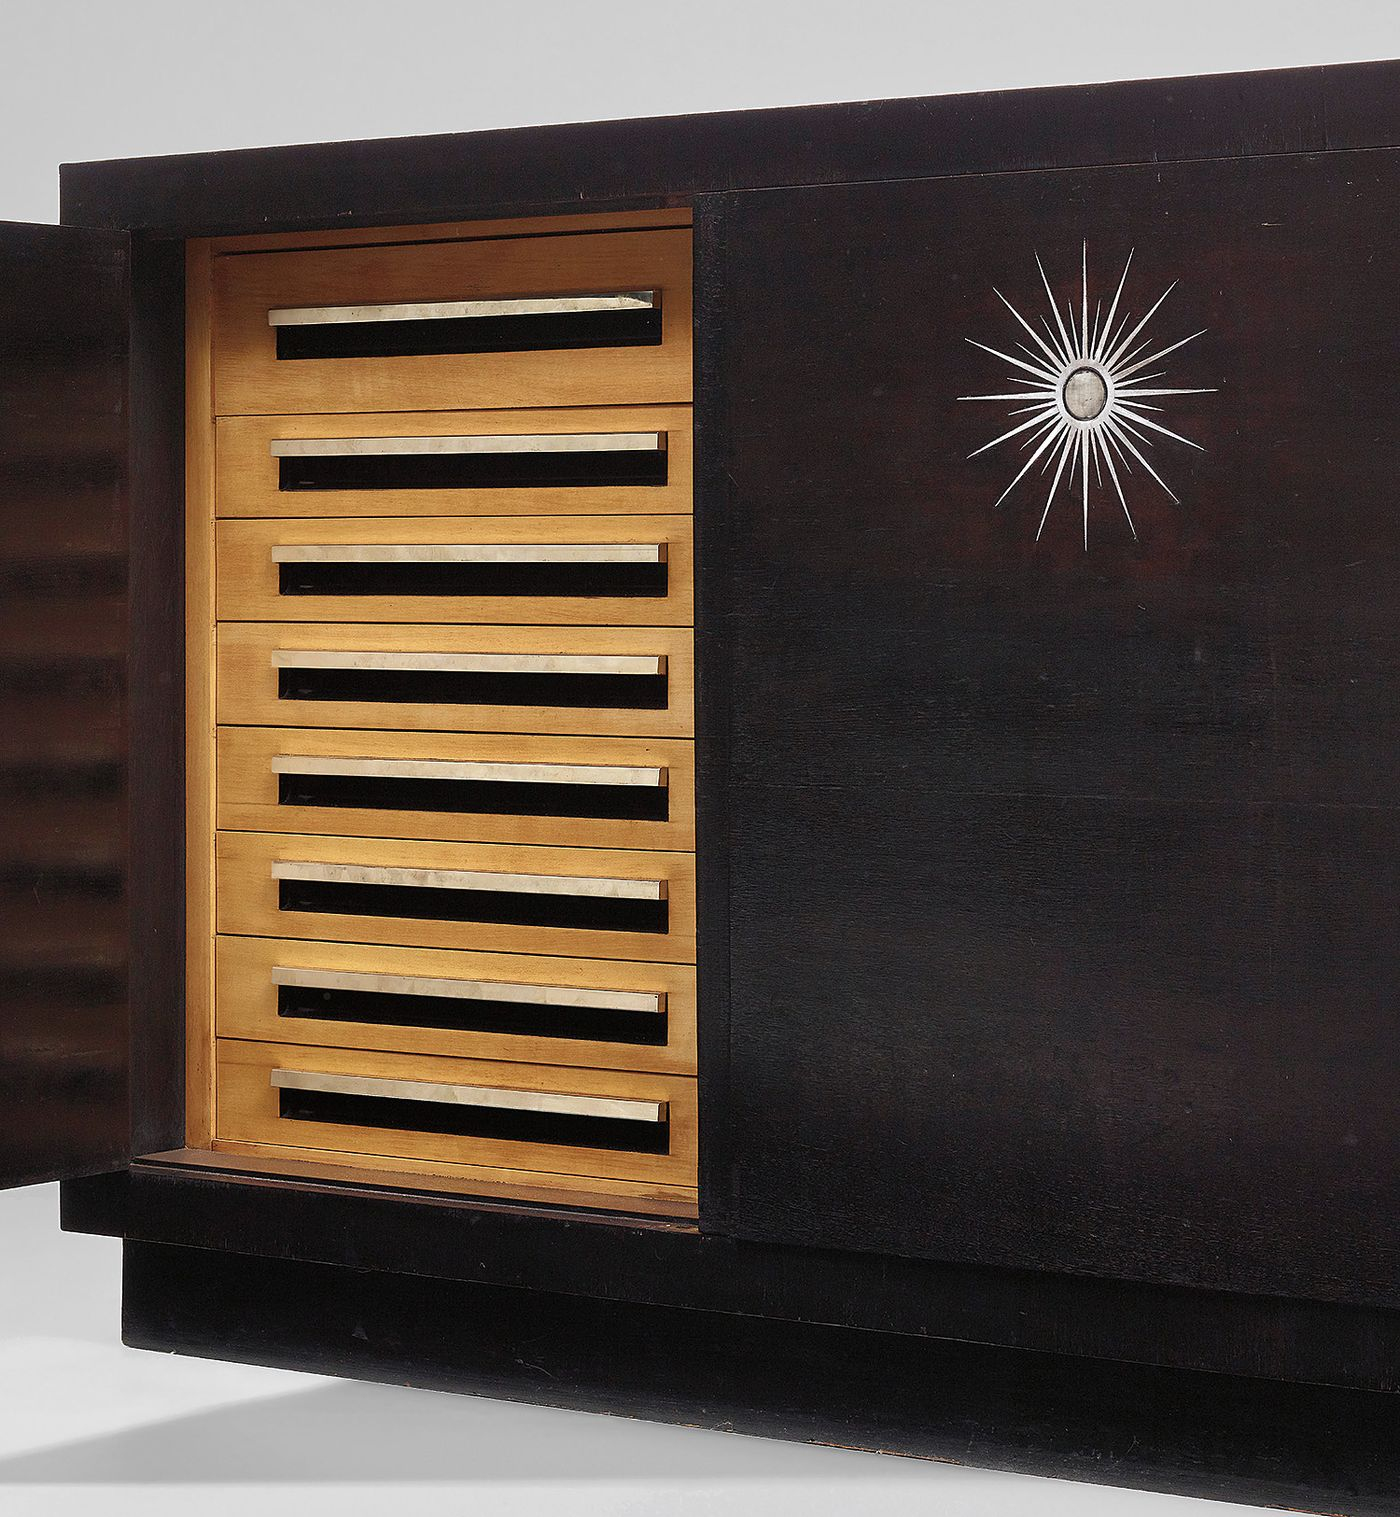 In the 1920s and '30s, the Maharaja of Indore cultivated a close-knit network of visionaries in art and design. Among them, the German architect Eckart Muthesius produced an important sideboard which features in our June Design auction.